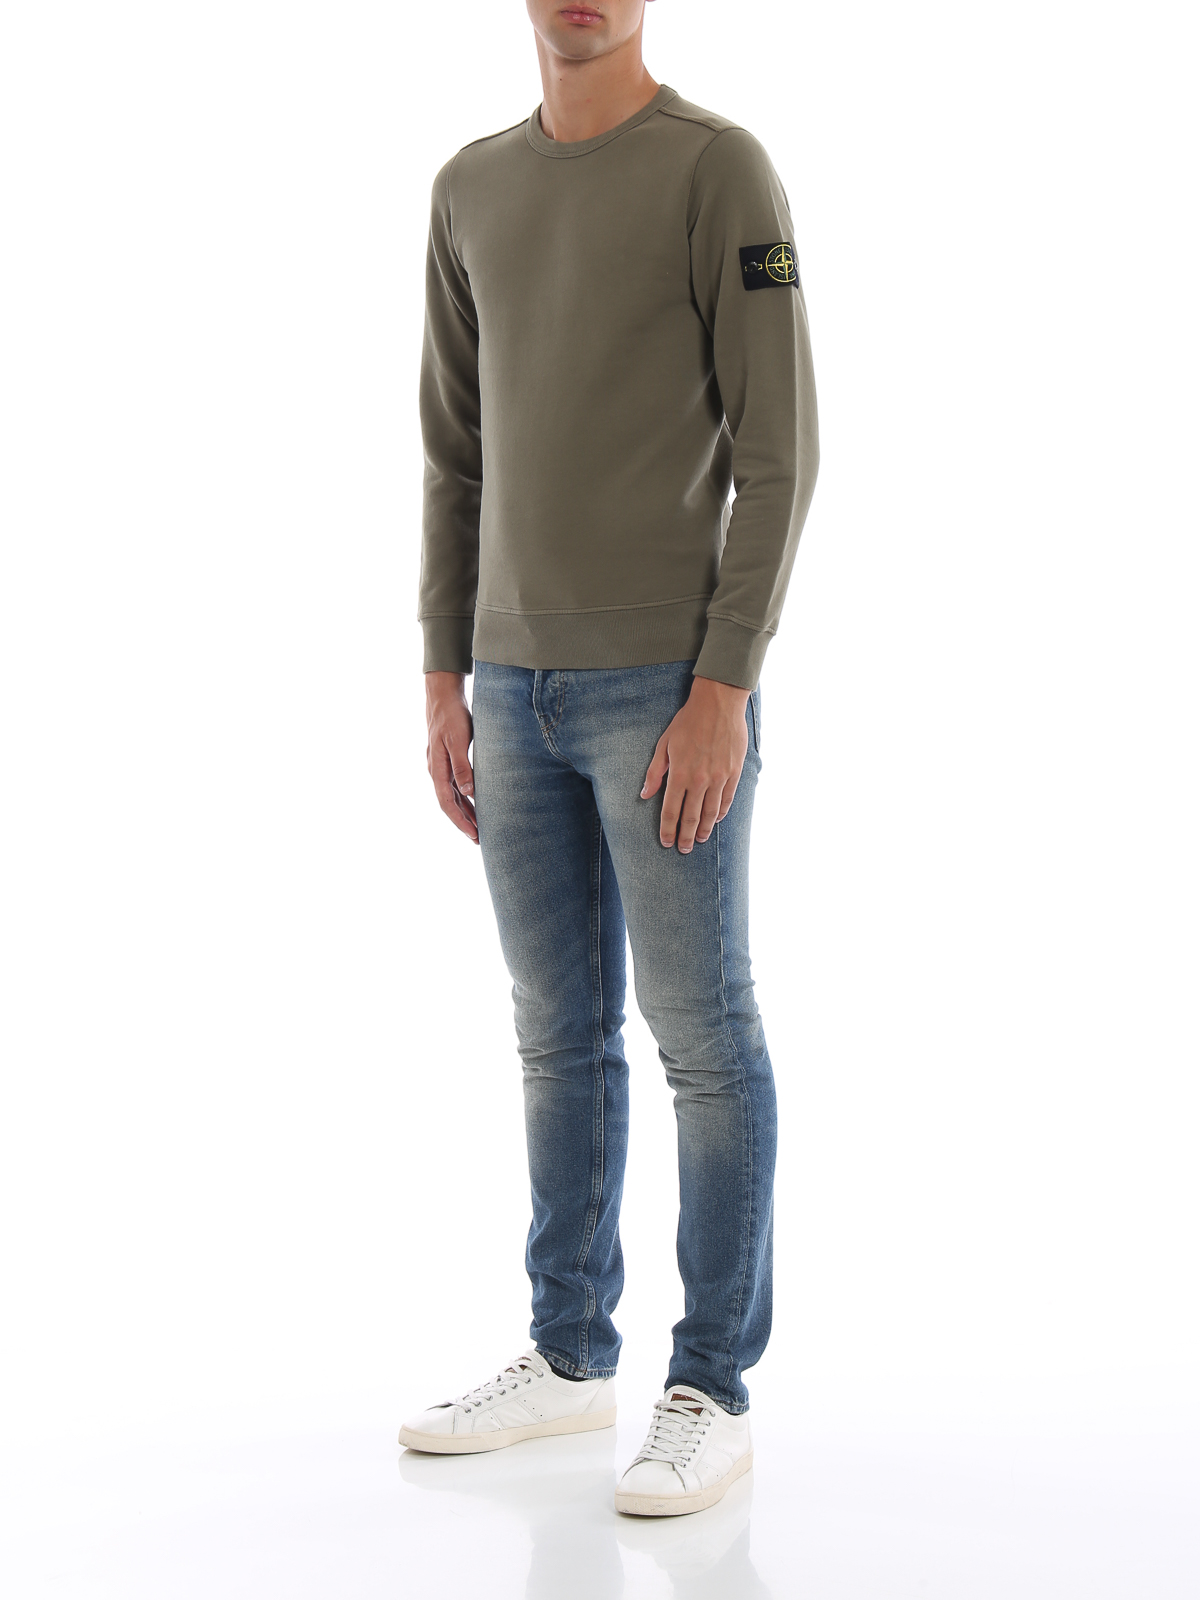 die beste Einstellung 5852a 64ac9 Stone Island - Olive cotton fleece crewneck sweatshirt ...